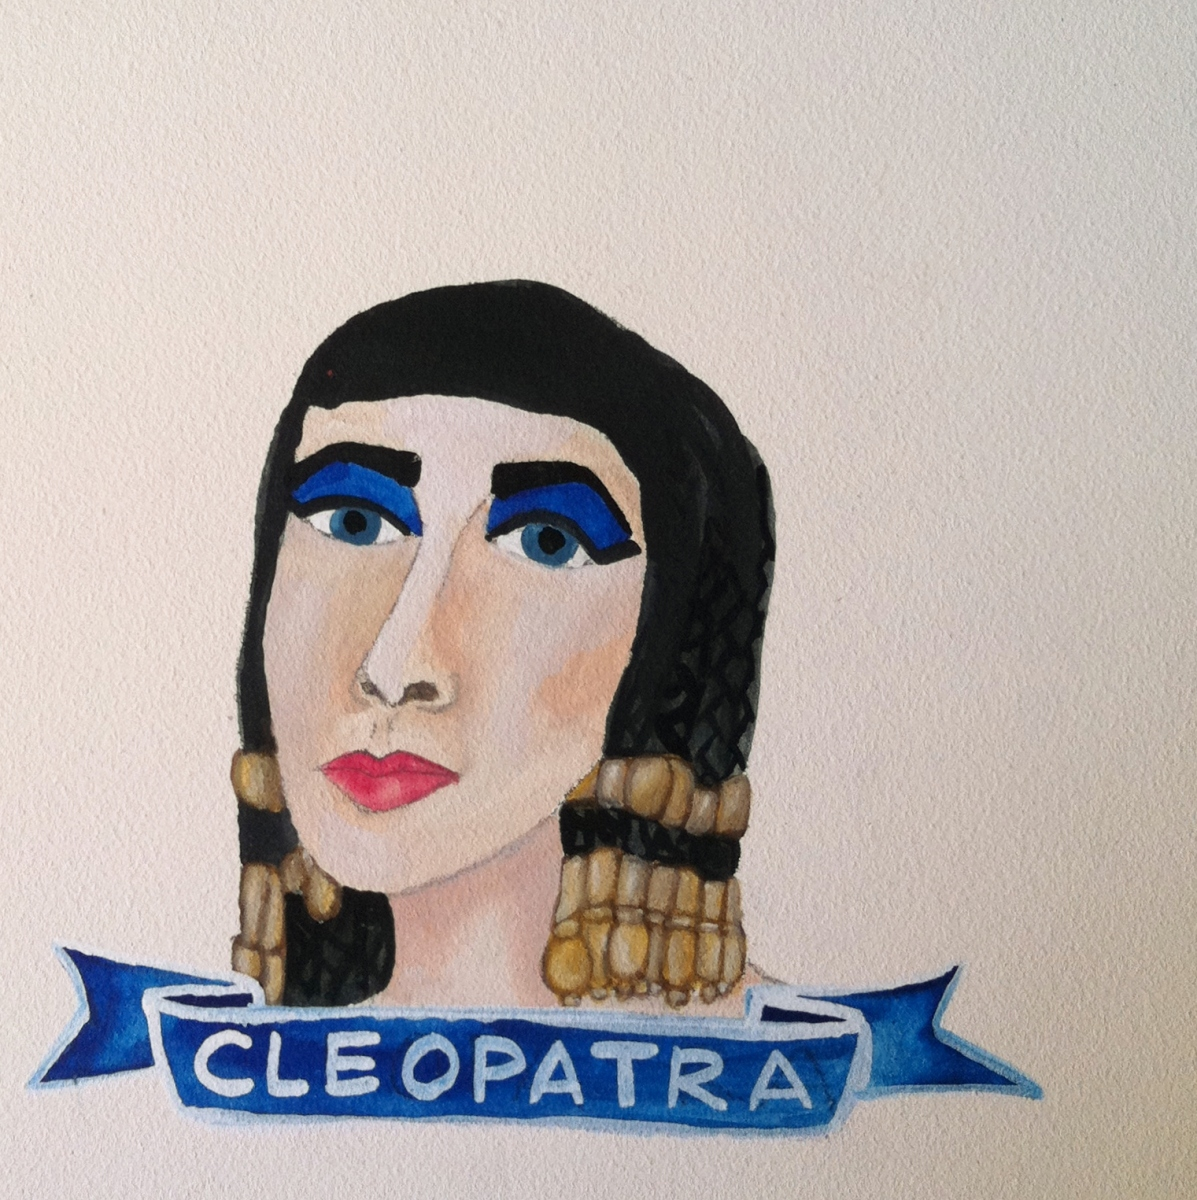 Talent Loves Company at Barbara Archer Gallery: 365 portraits by Lydia Walls - Cleopatra